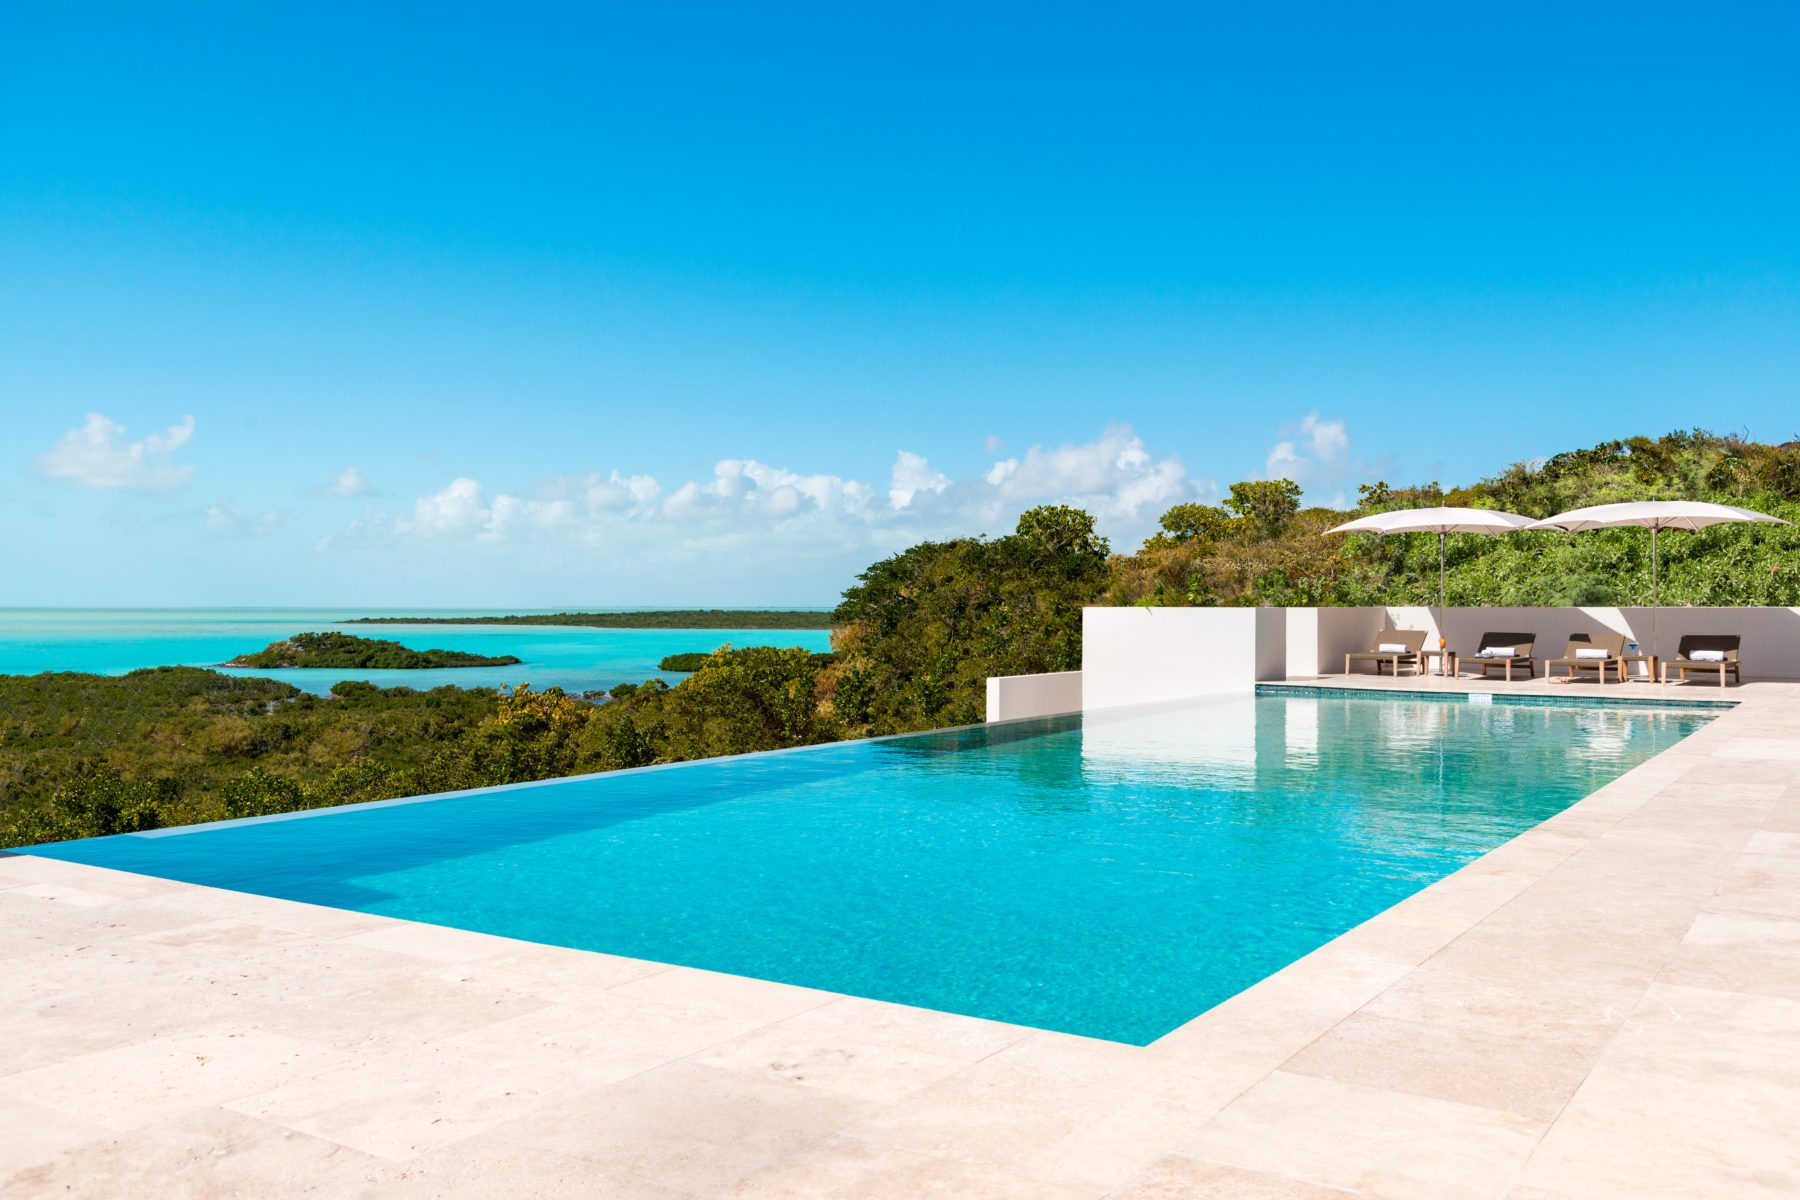 Infinity Pool at Great House